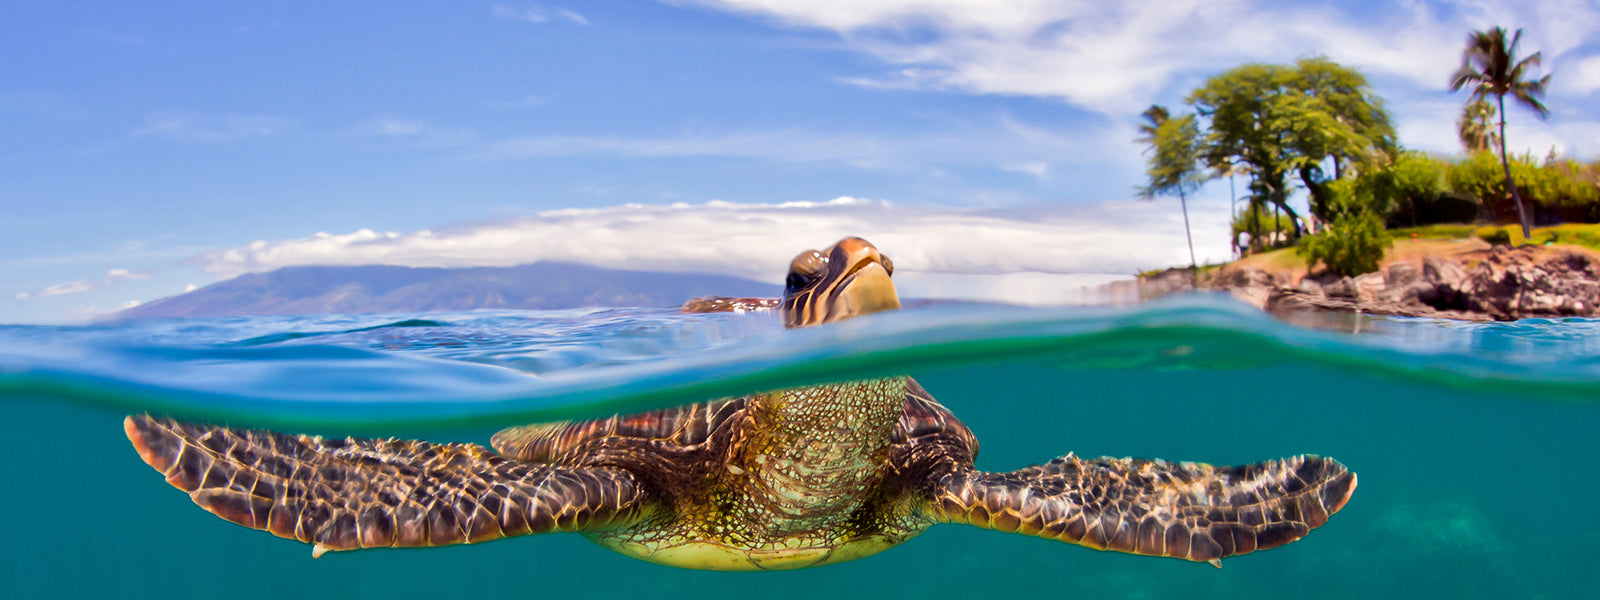 Breathe Turtle with head above water Cesere brothers